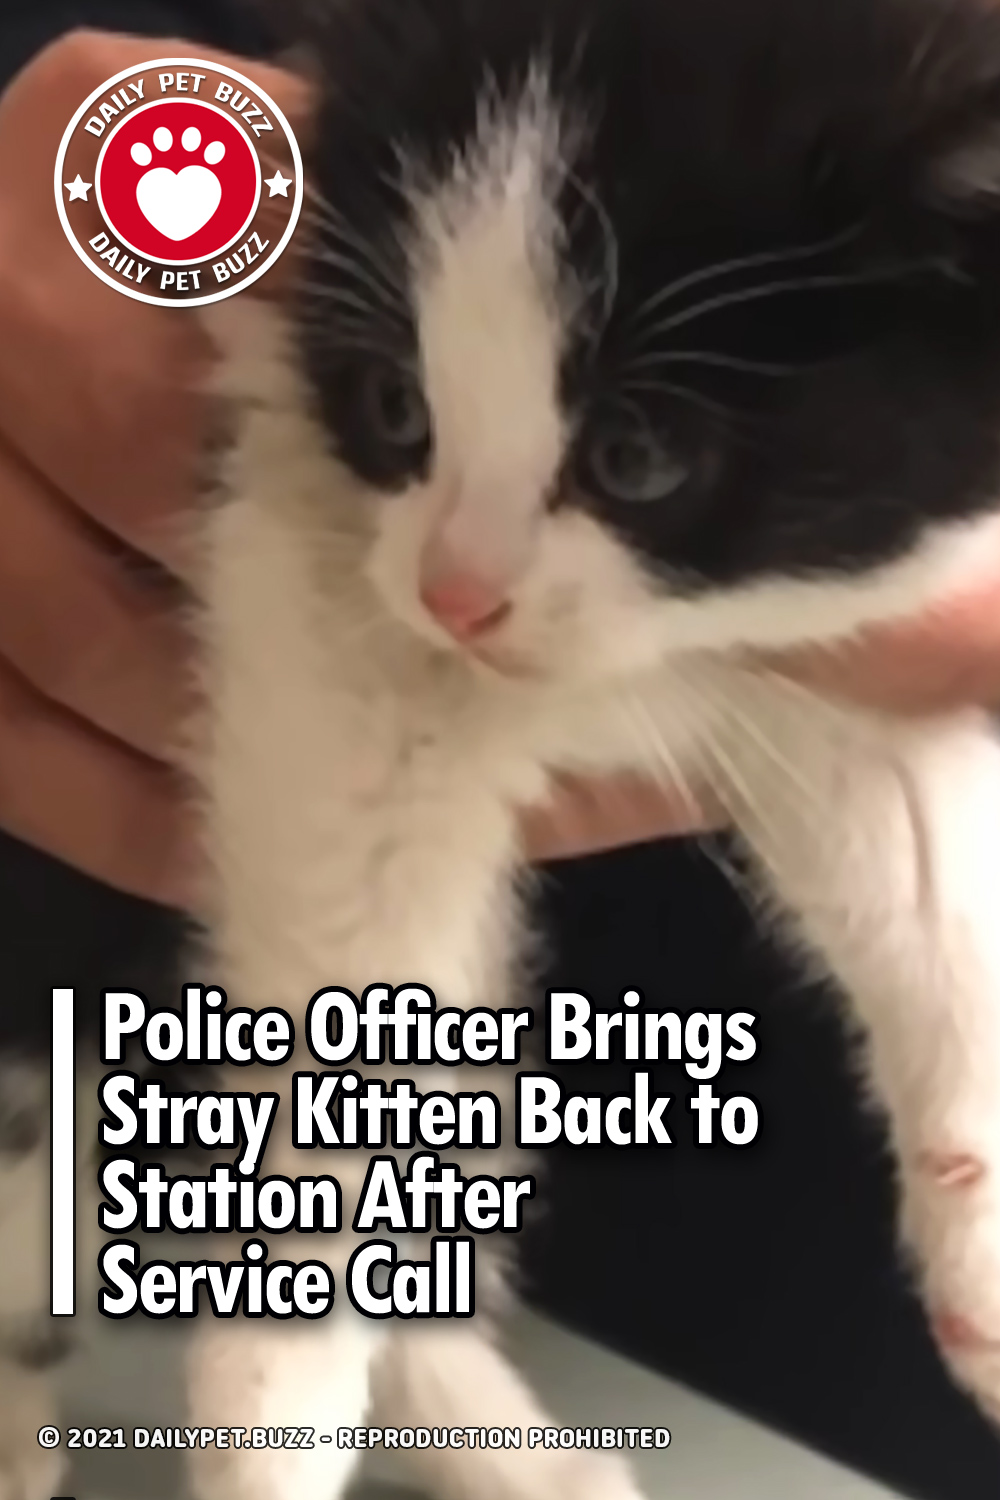 Police Officer Brings Stray Kitten Back to Station After Service Call